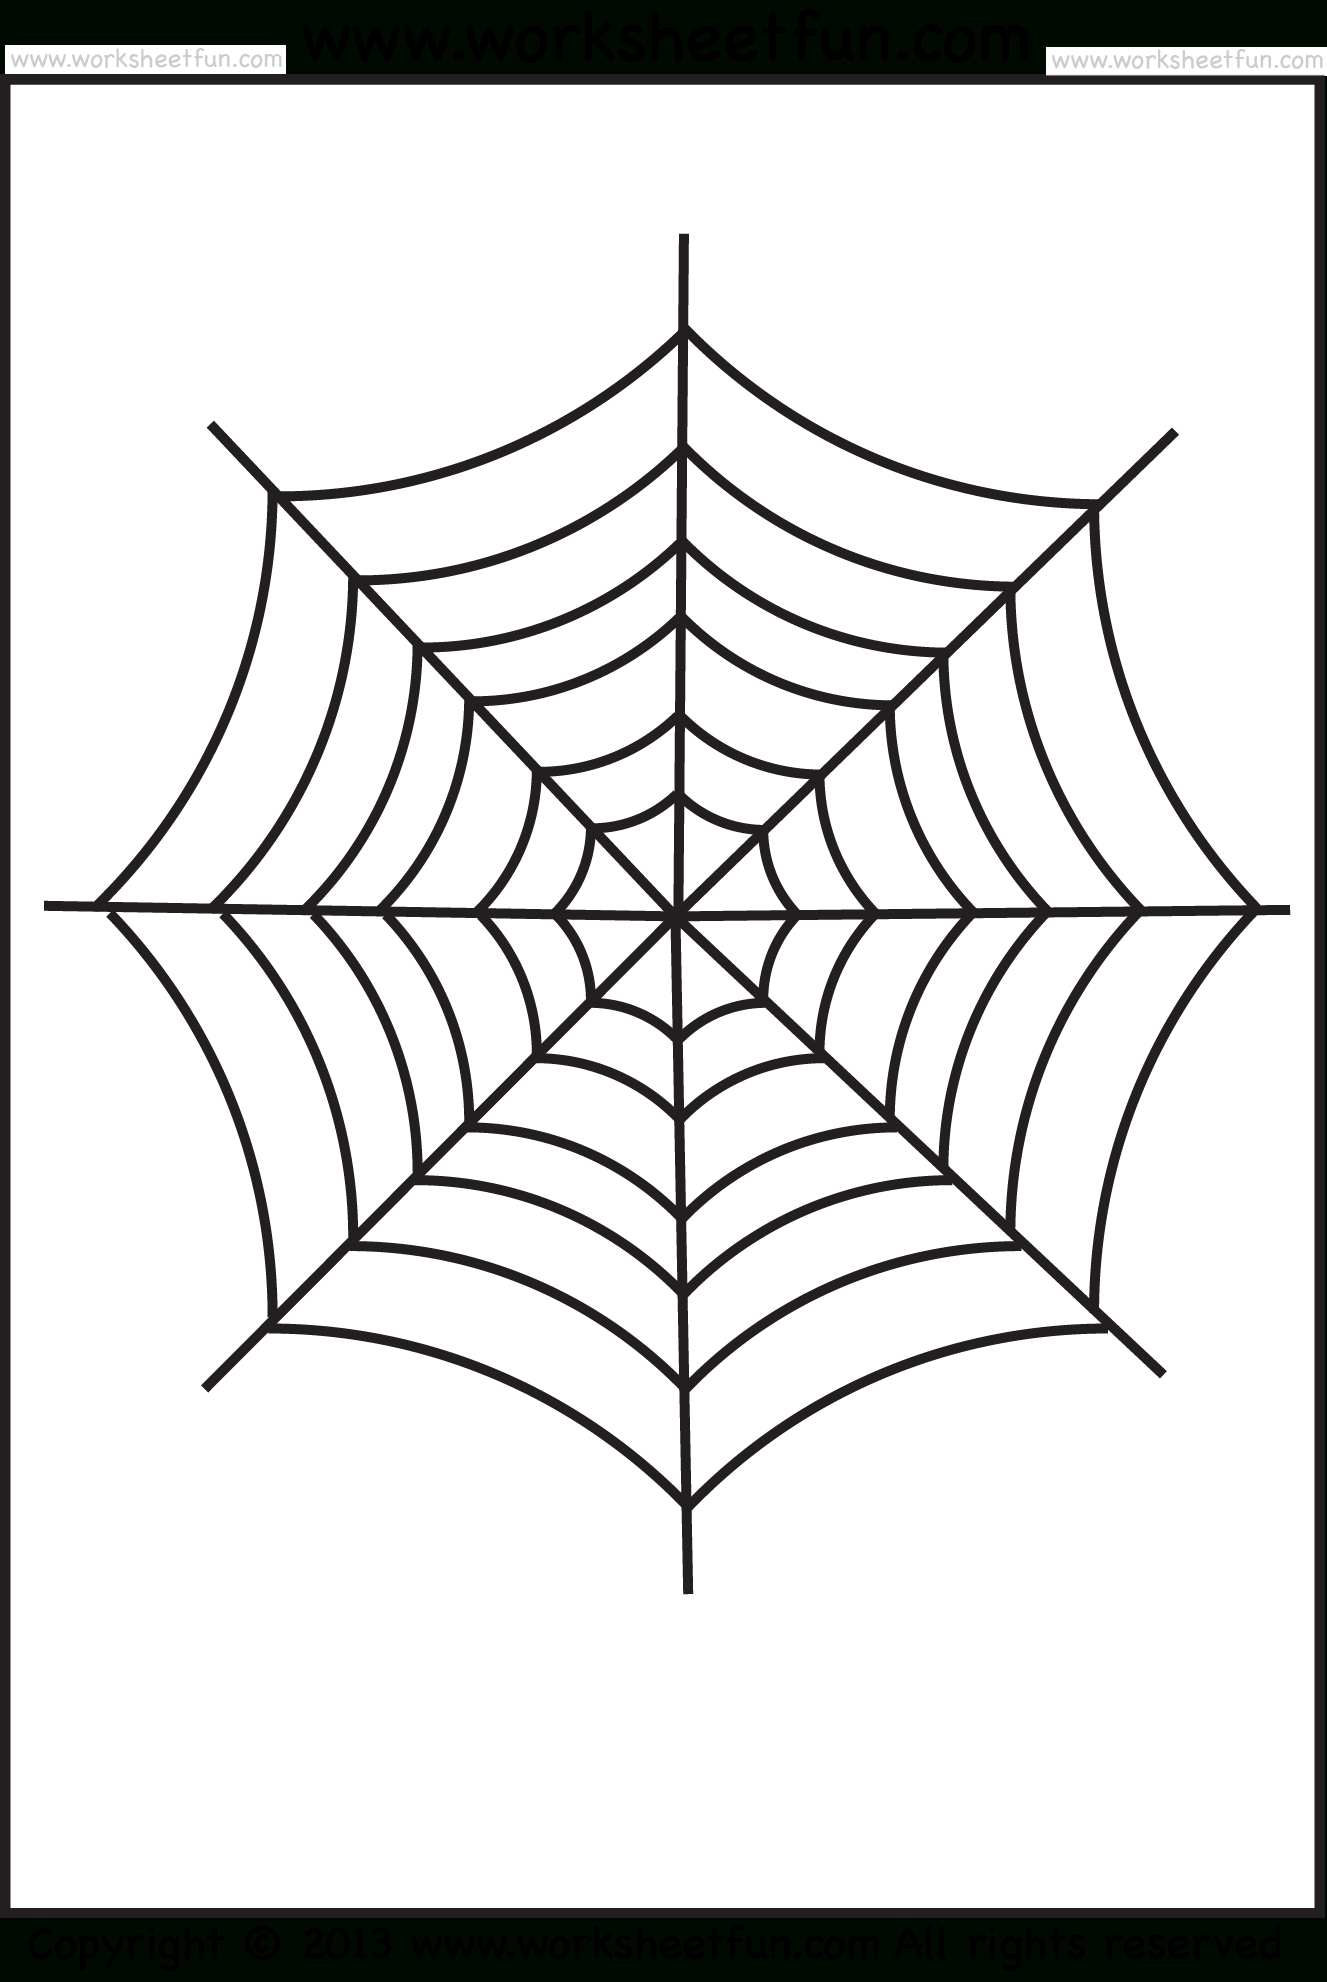 Spider Web Tracing And Coloring – 2 Halloween Worksheets / Free - Spider Web Stencil Free Printable